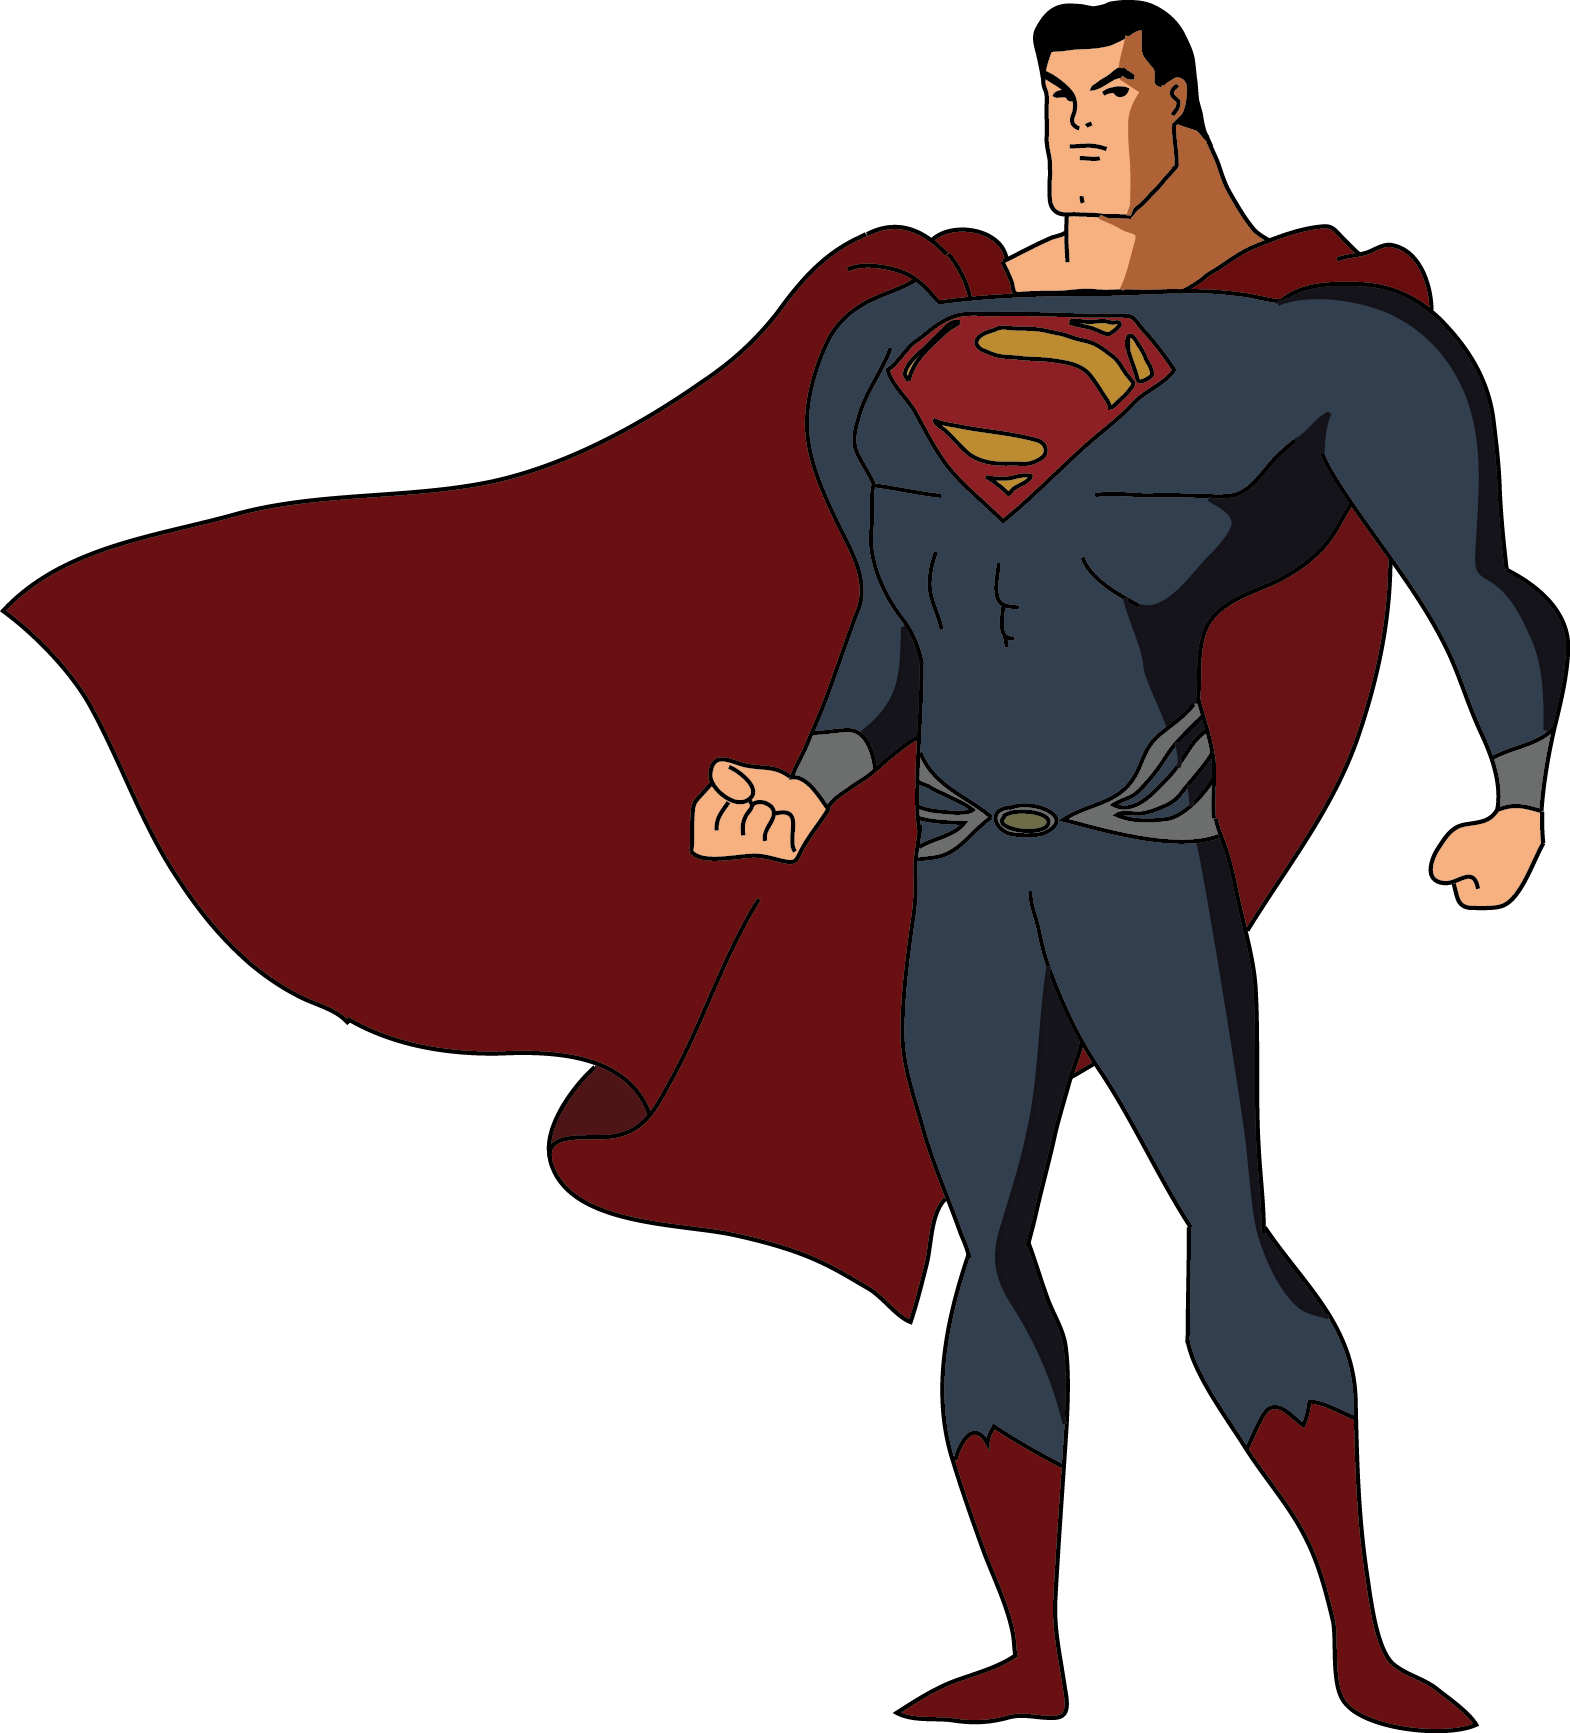 Superheroes clipart justice league. Why the dc animated